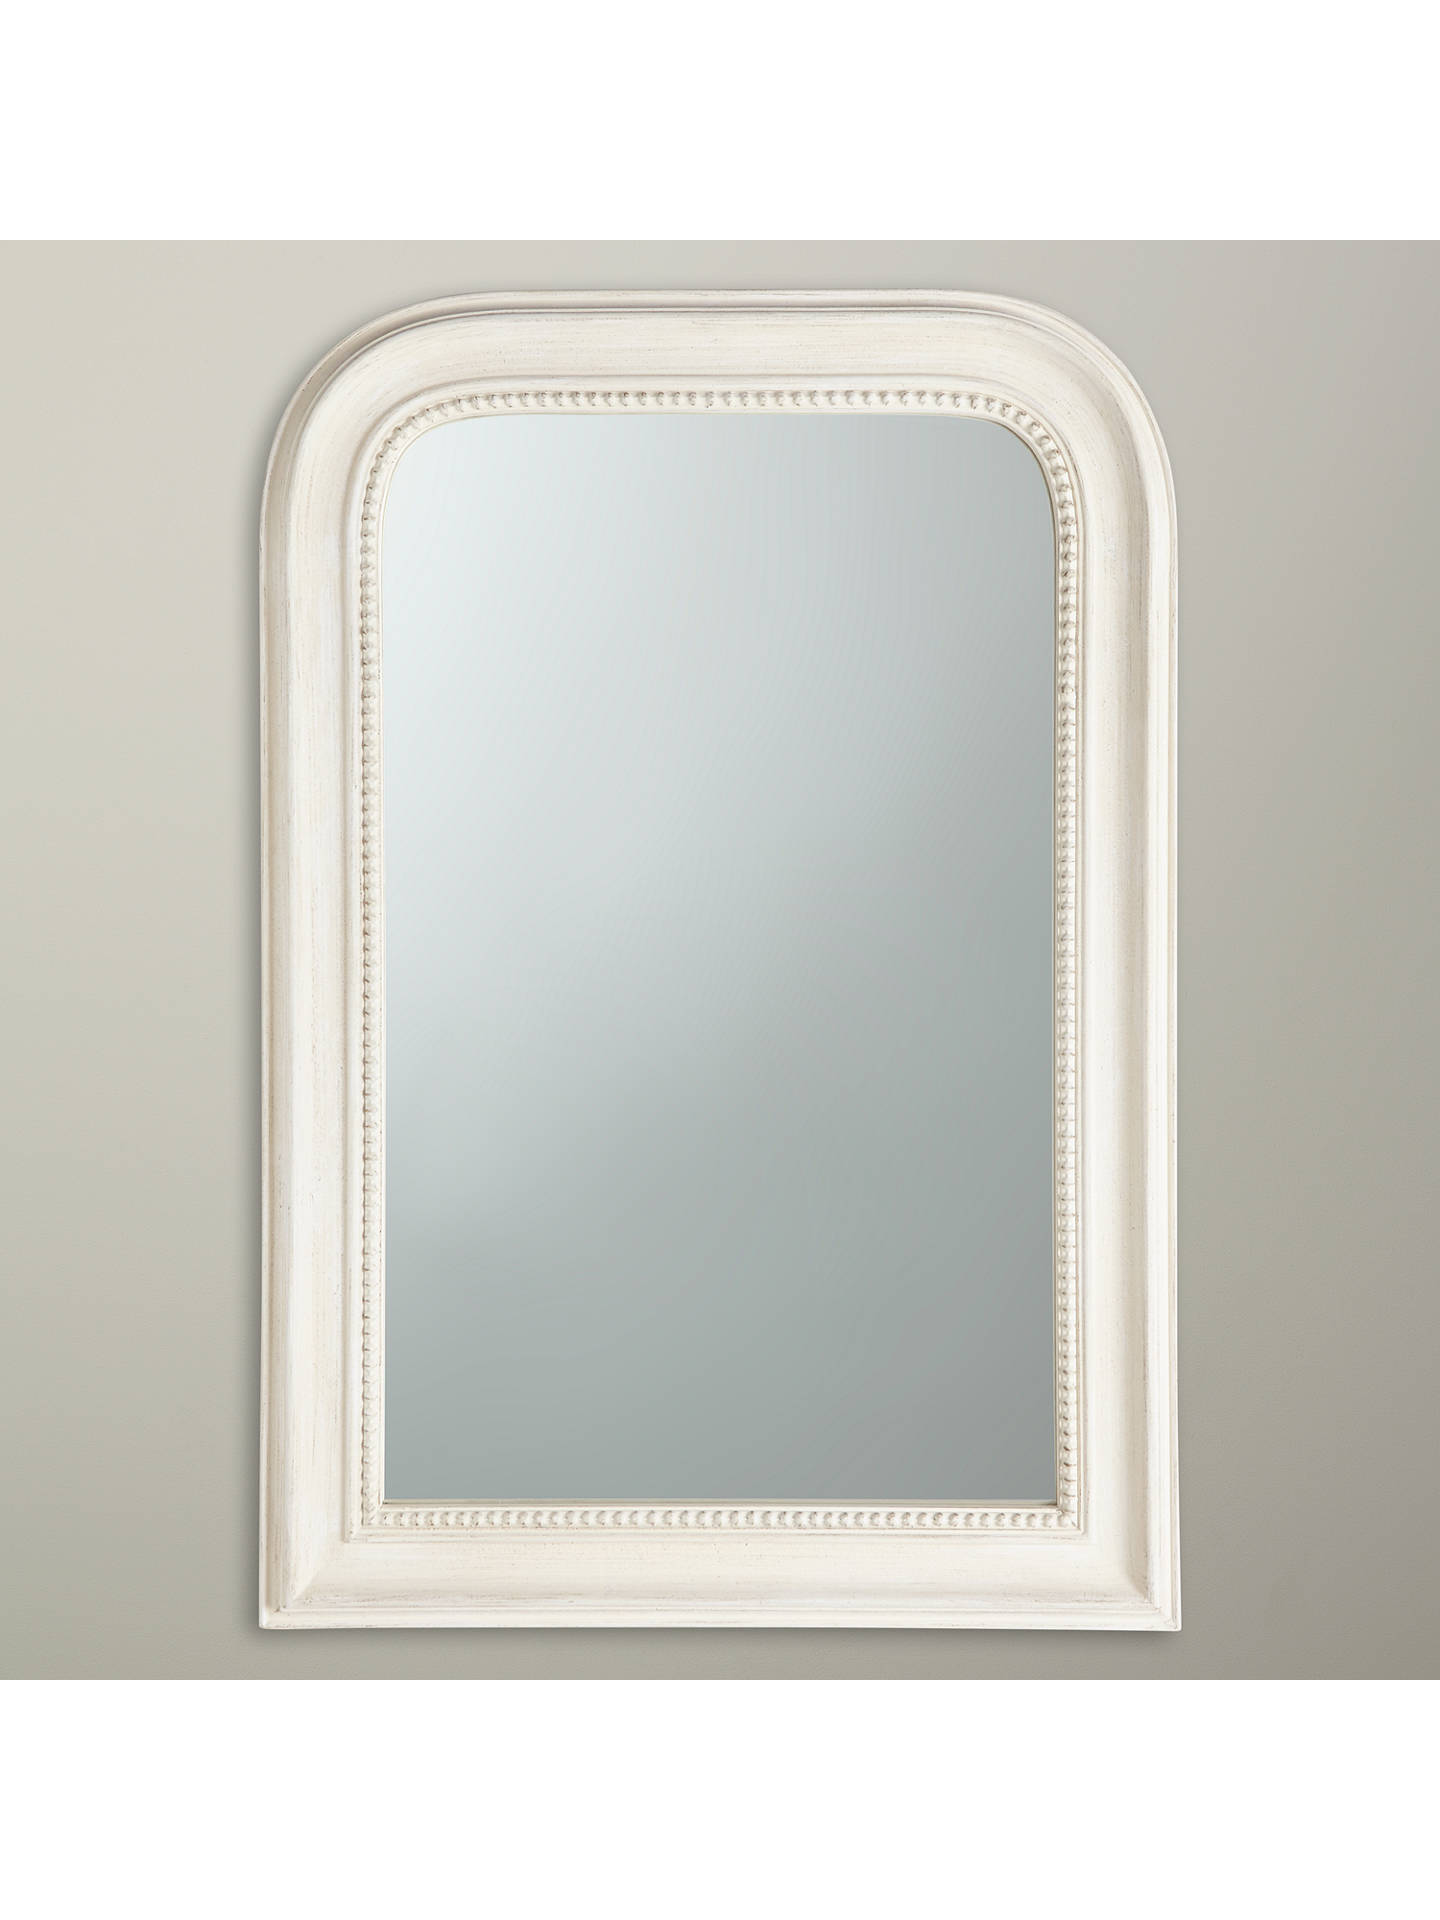 john lewis distressed overmantel mirror 80 x 55cm cream. Black Bedroom Furniture Sets. Home Design Ideas